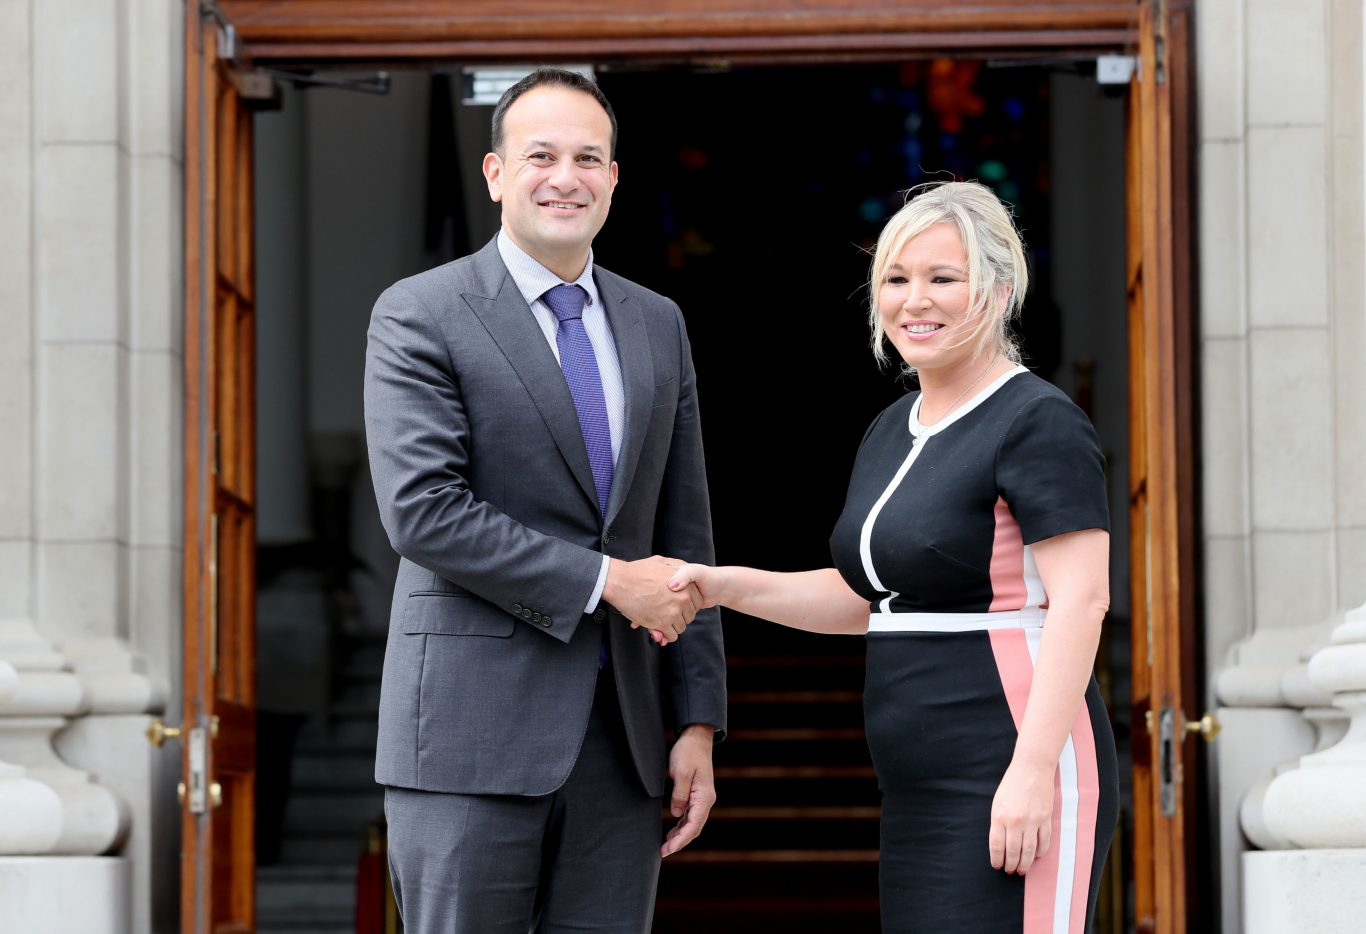 Taoiseach Leo Varadkar welcomes Sinn Fein's Northern Ireland leader Michelle O'Neill to Government Buildings in Dublin (Brian Lawless/PA)